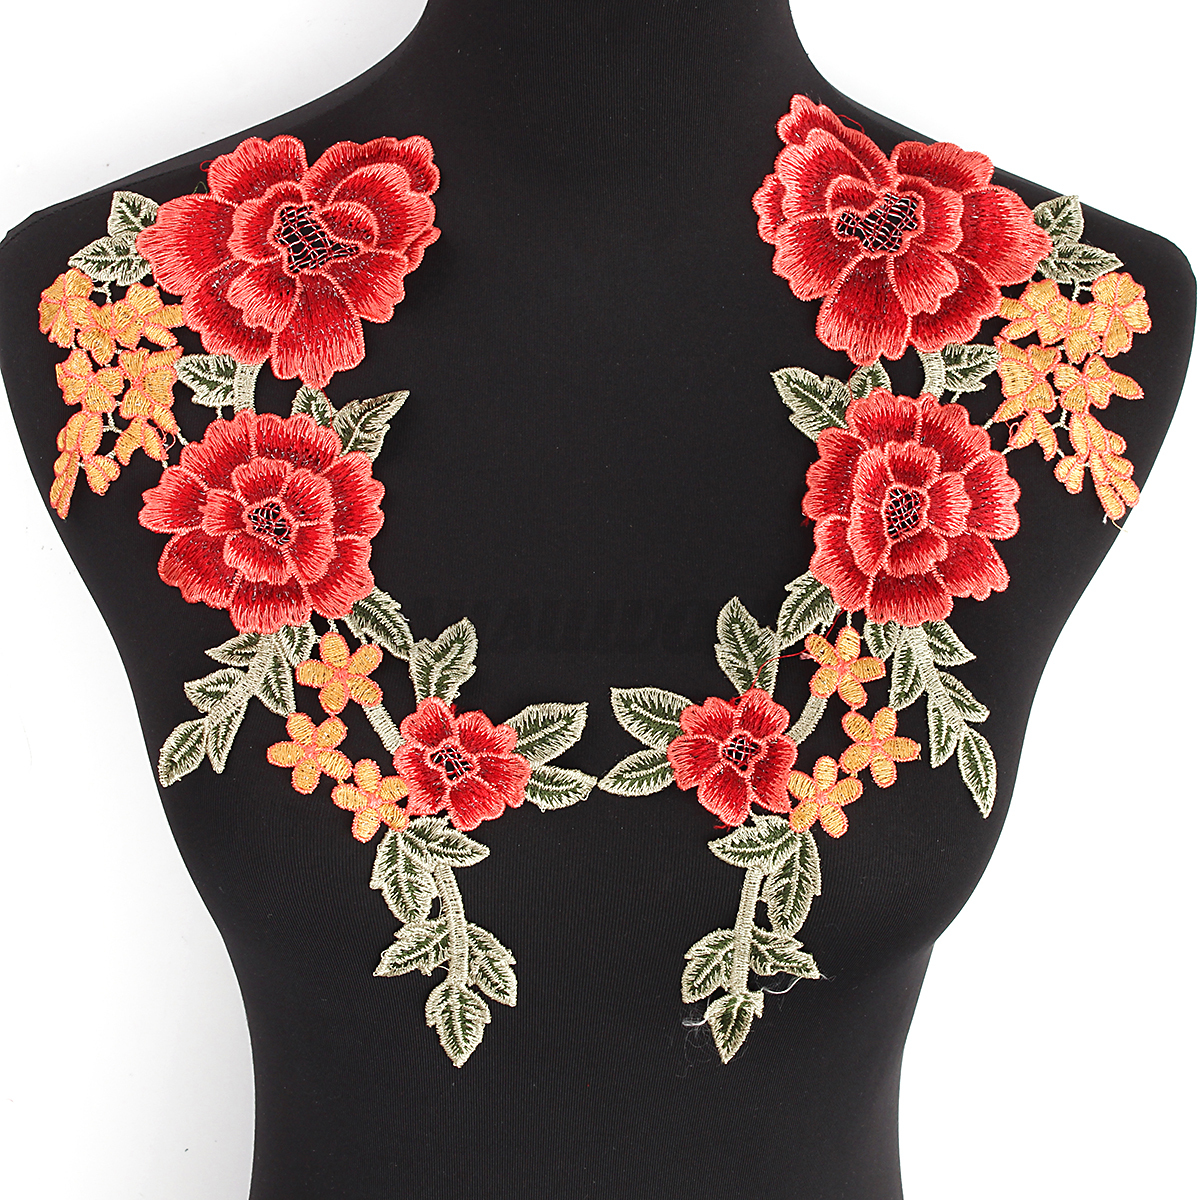 Embroidered flower applique motif collar neck trim patches